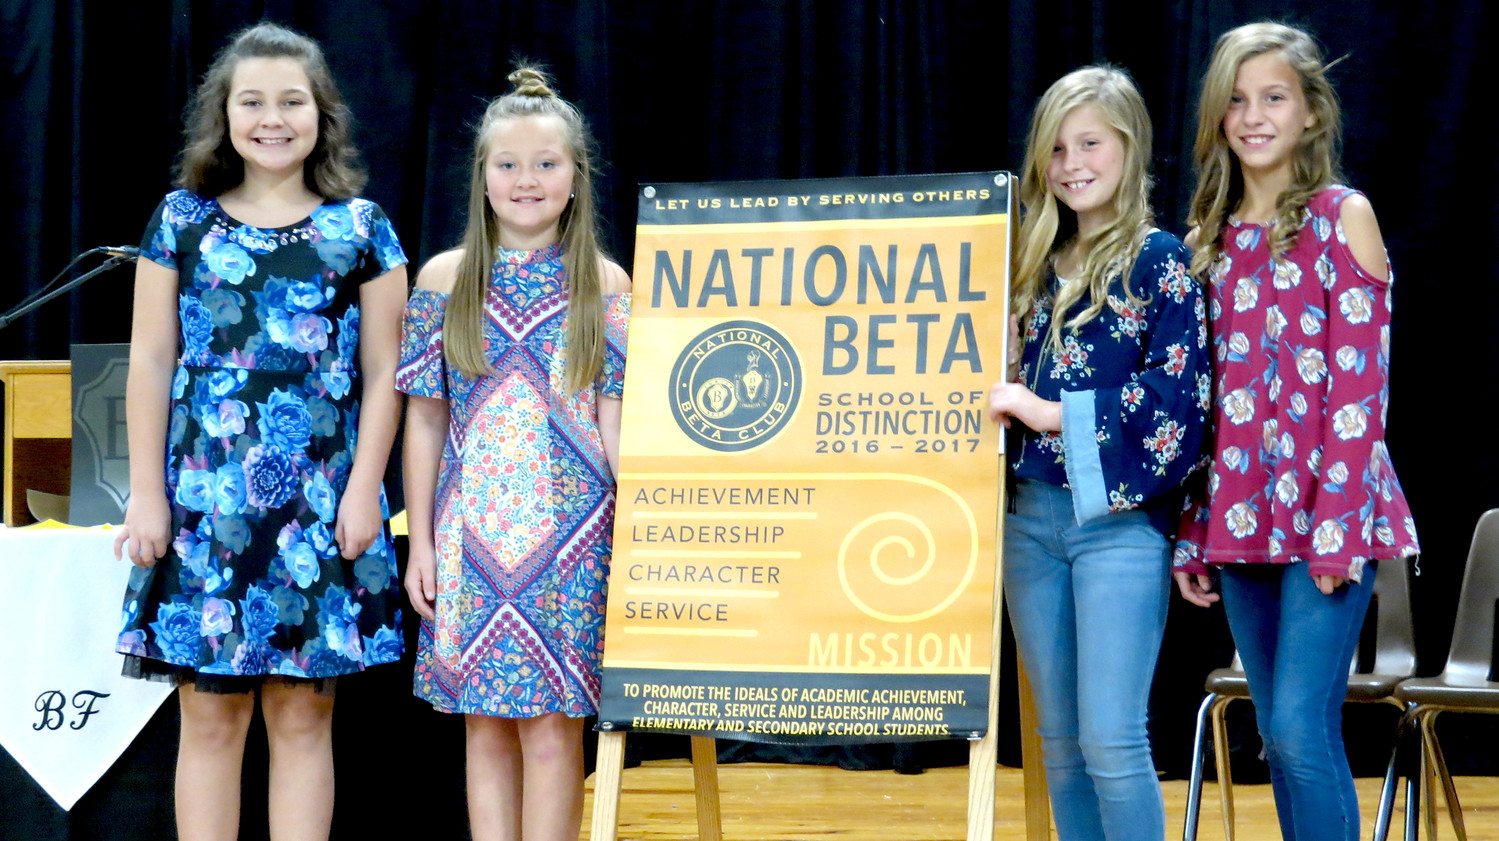 BLACK FOX ELEMENTARY'S Junior Beta Club earned the national Beta organization's Distinguished School Award for the second year in a row. Seen here with the award are the club's officers for the 2017-18 year: President Emma McMahan, Vice President Hannah Pearson, Secretary Keelyn Eslinger and Chaplain Madelyn Eslinger. The club is sponsored by school curriculum coach Amber Winters.